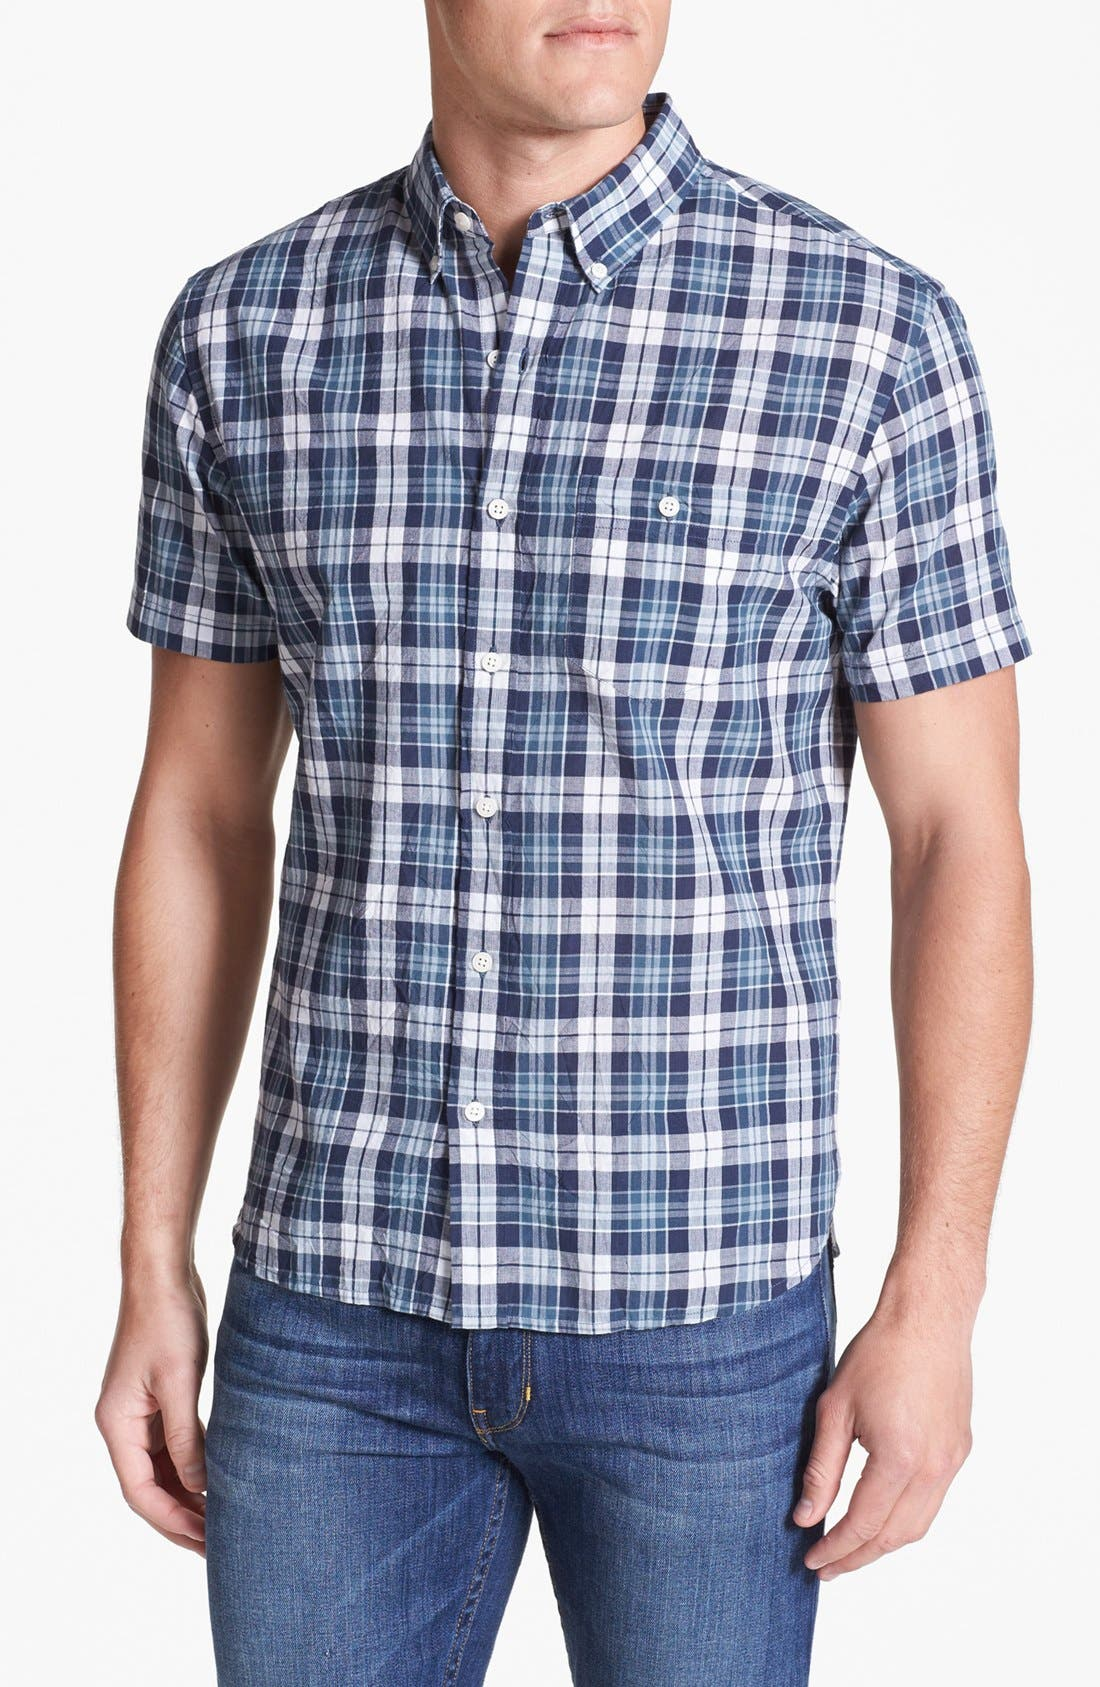 Alternate Image 1 Selected - Bonobos Madras Plaid Standard Fit Short Sleeve Sport Shirt